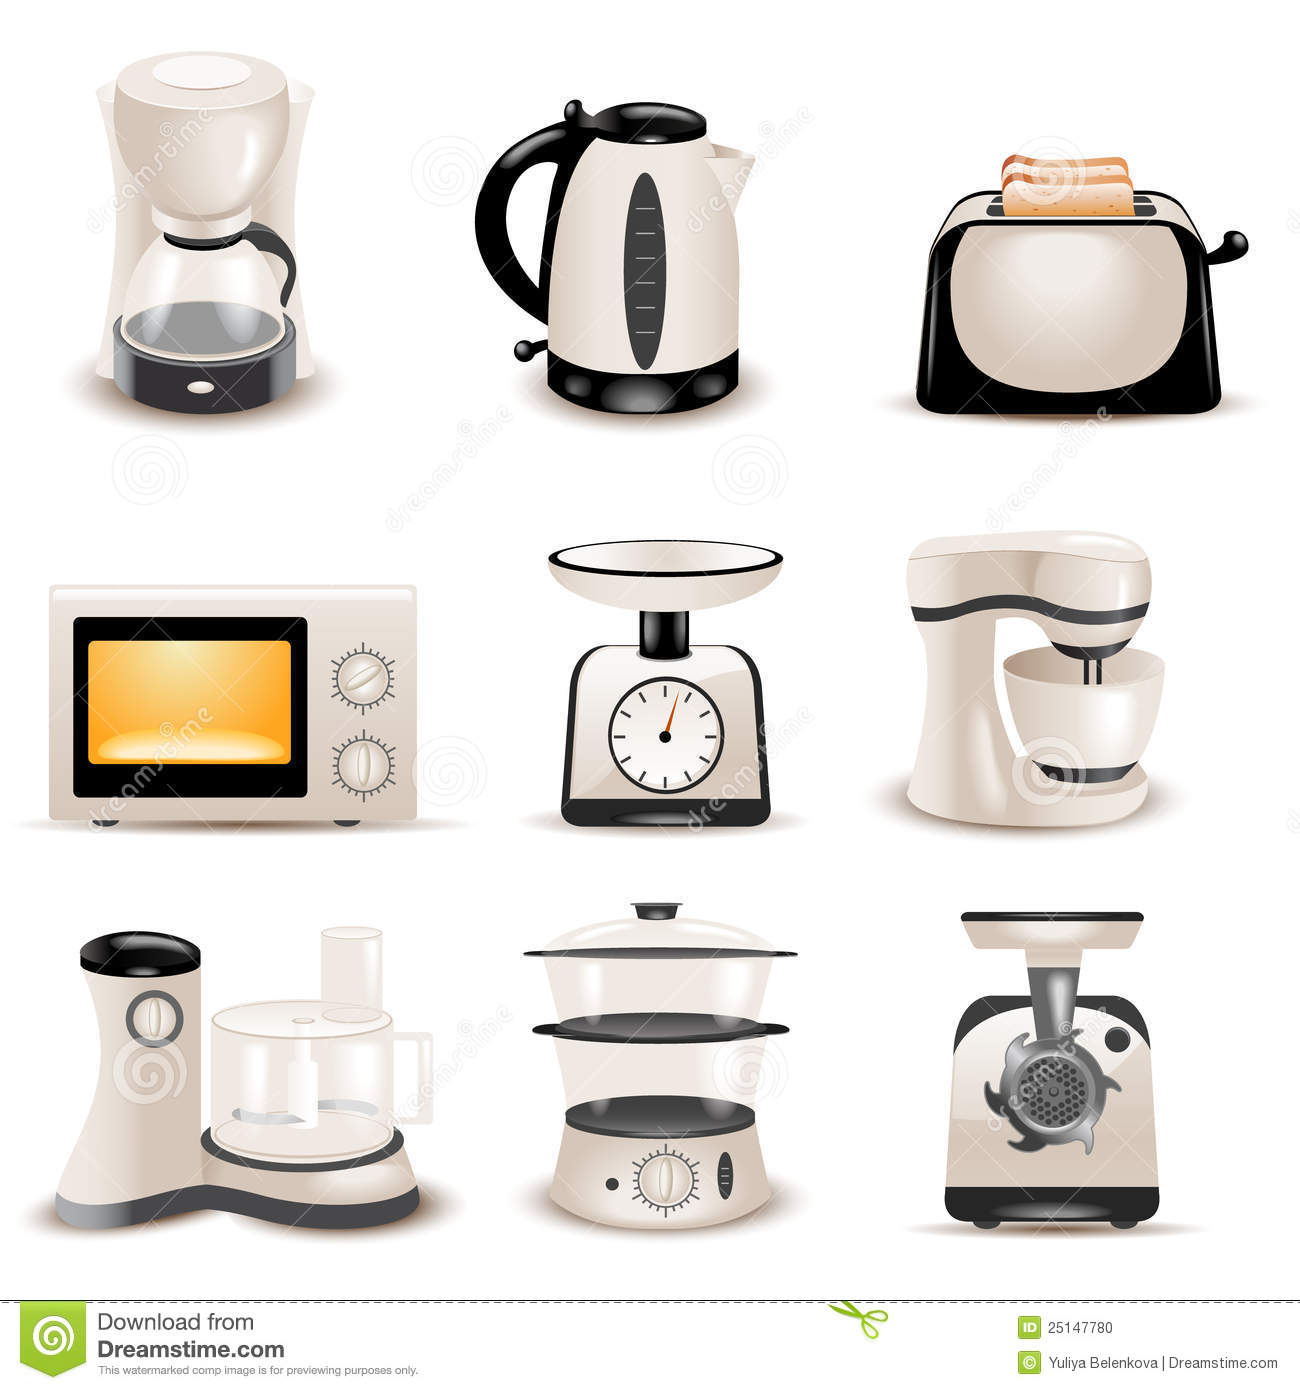 Uncategorized Kitchen Appliance Set kitchen appliances images small view all appliances